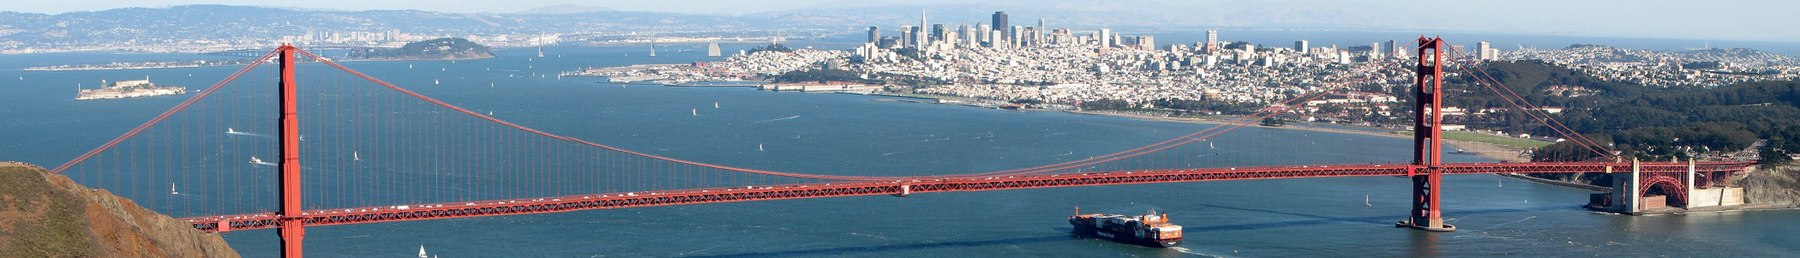 The Golden Gate Bridge and San Francisco Bay